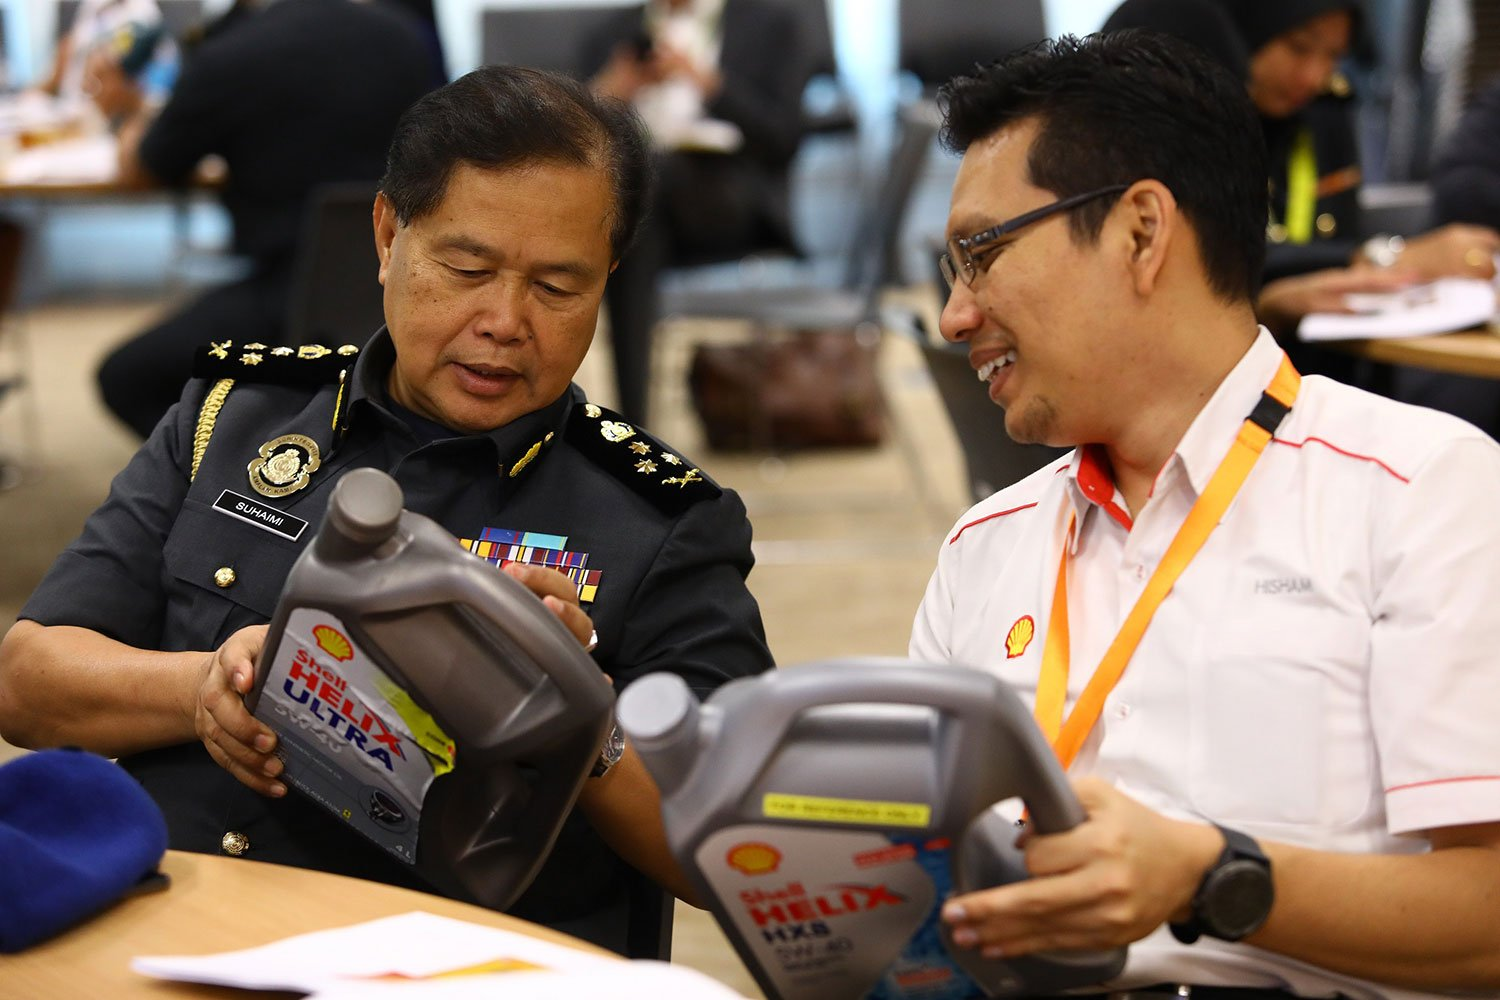 SHELL MALAYSIA STRENGTHENS COLLABORATION WITH ENFORCEMENT AGENCIES TO COMBAT ILLEGAL LUBRICANTS